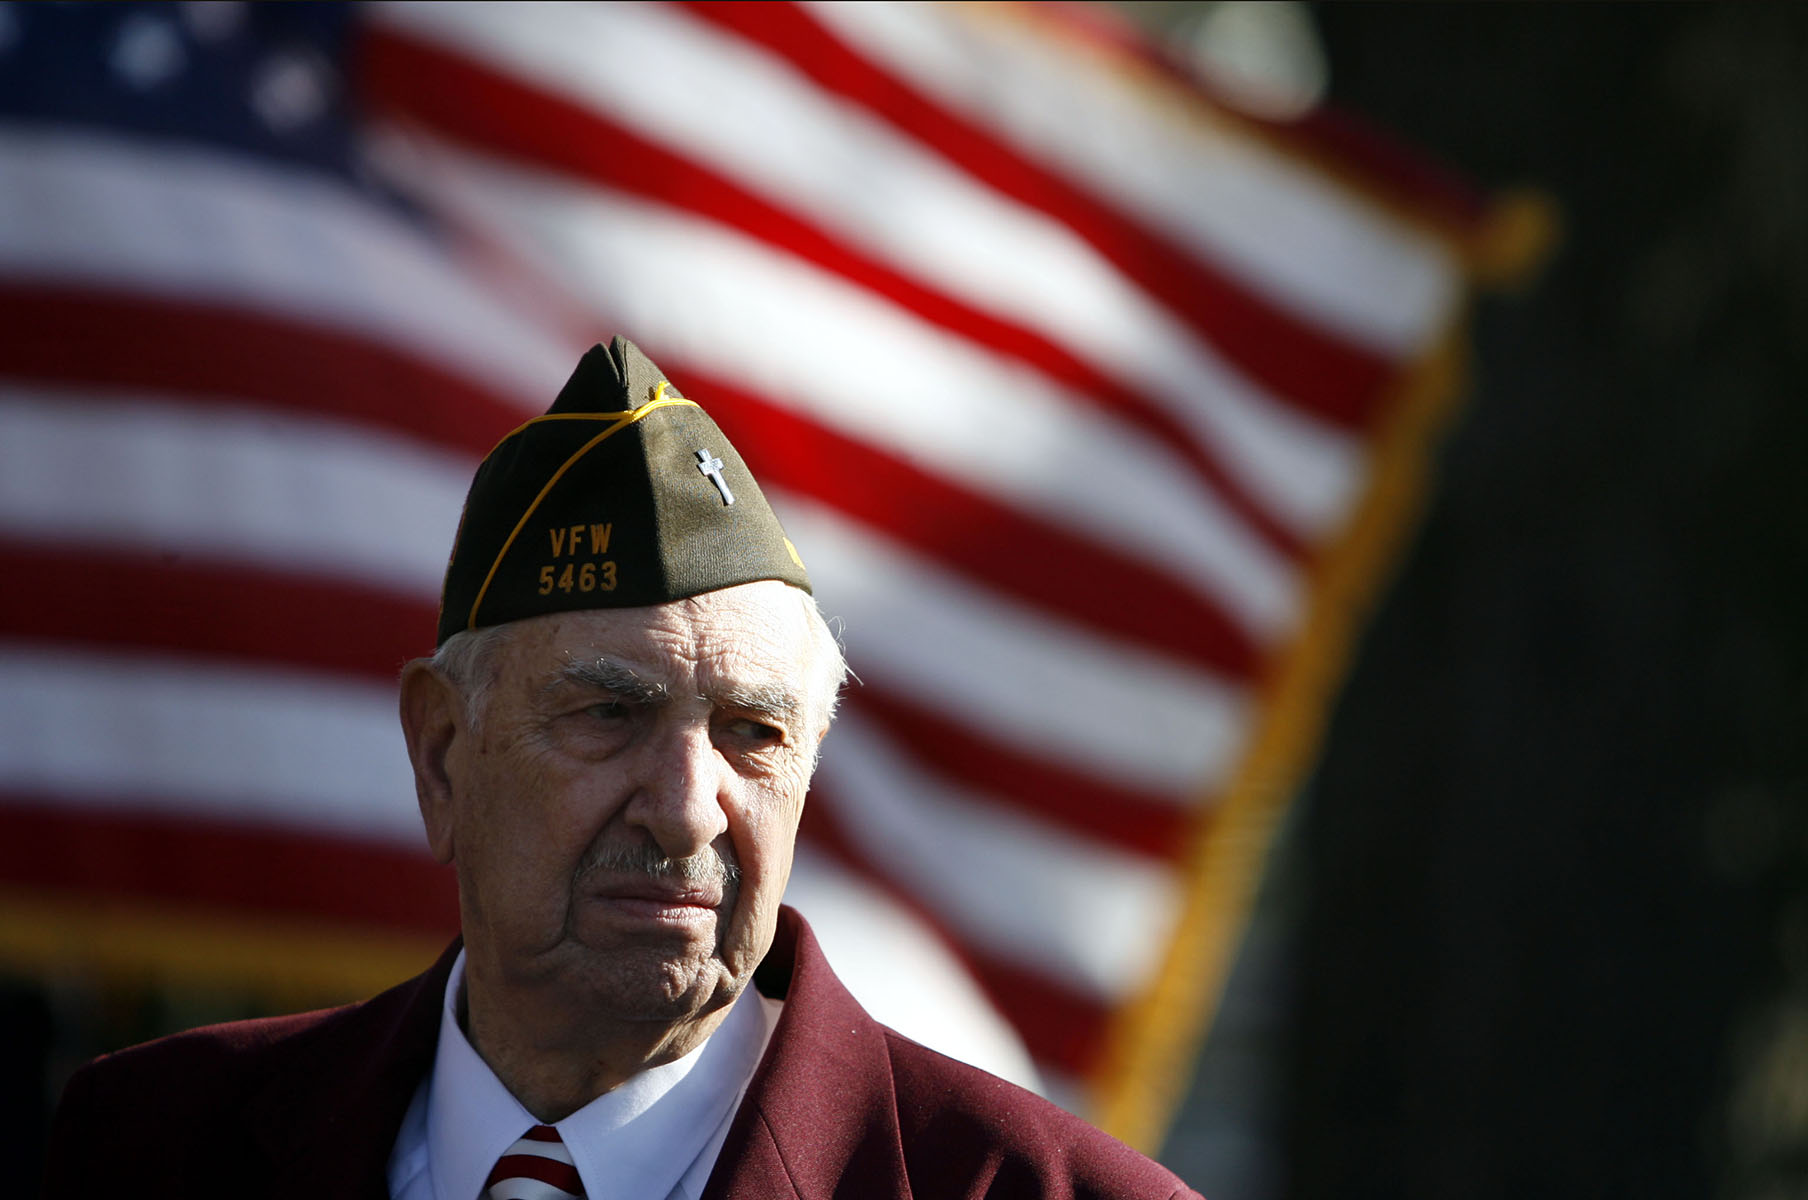 Veteran Alfred Della Rocco pauses during the close of the West Harrison Veterans Day parade.